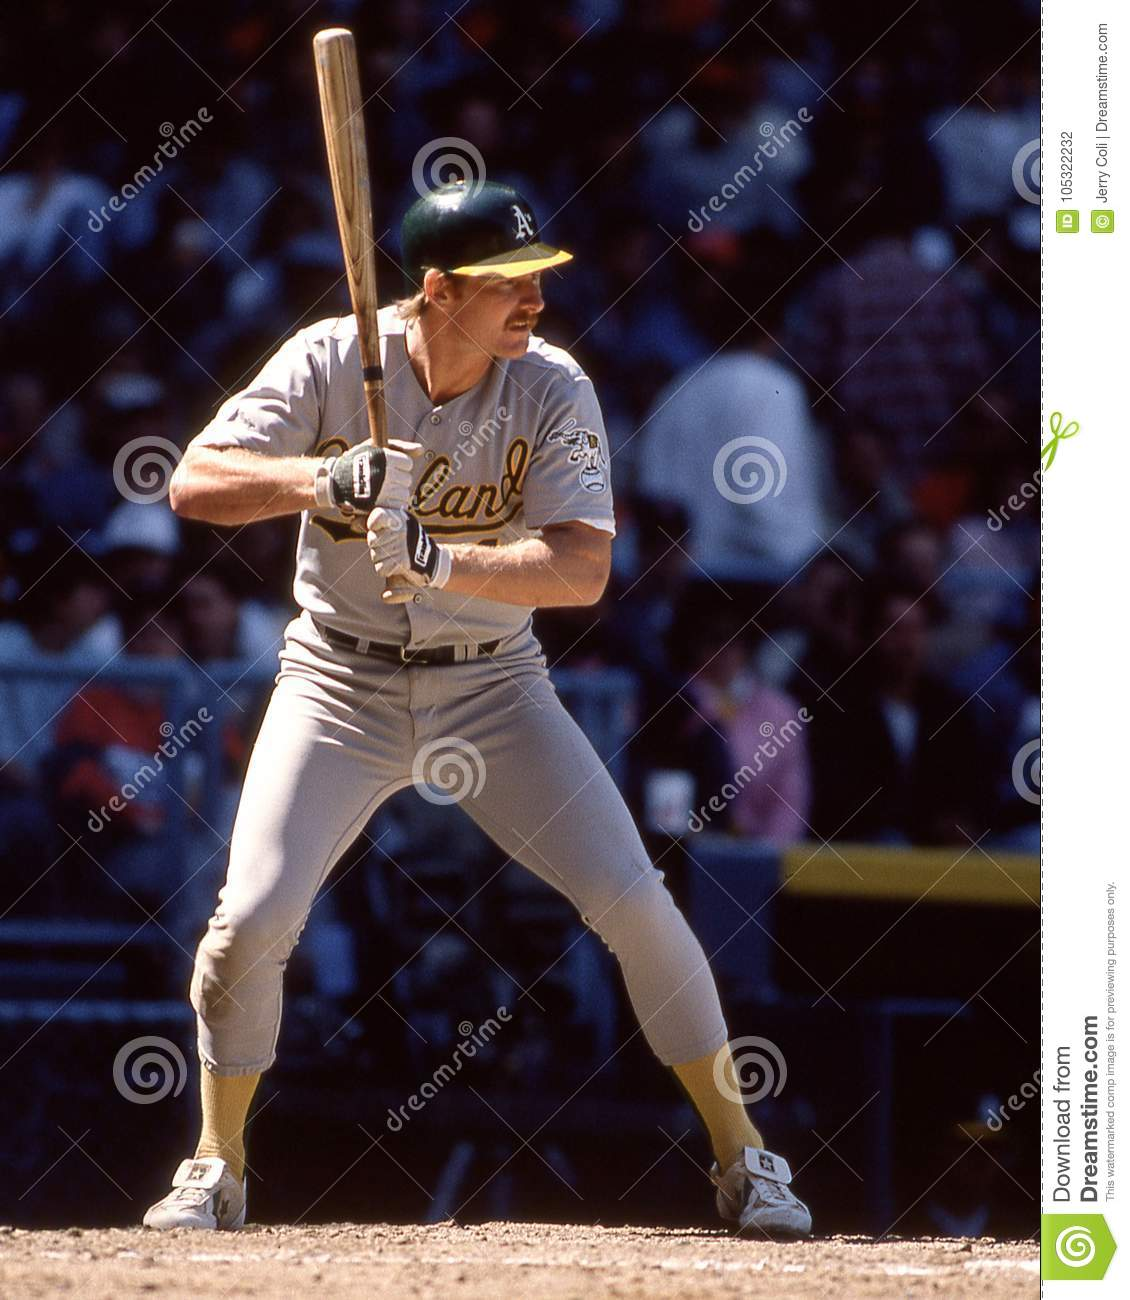 Carney Lansford, Oakland Athletics